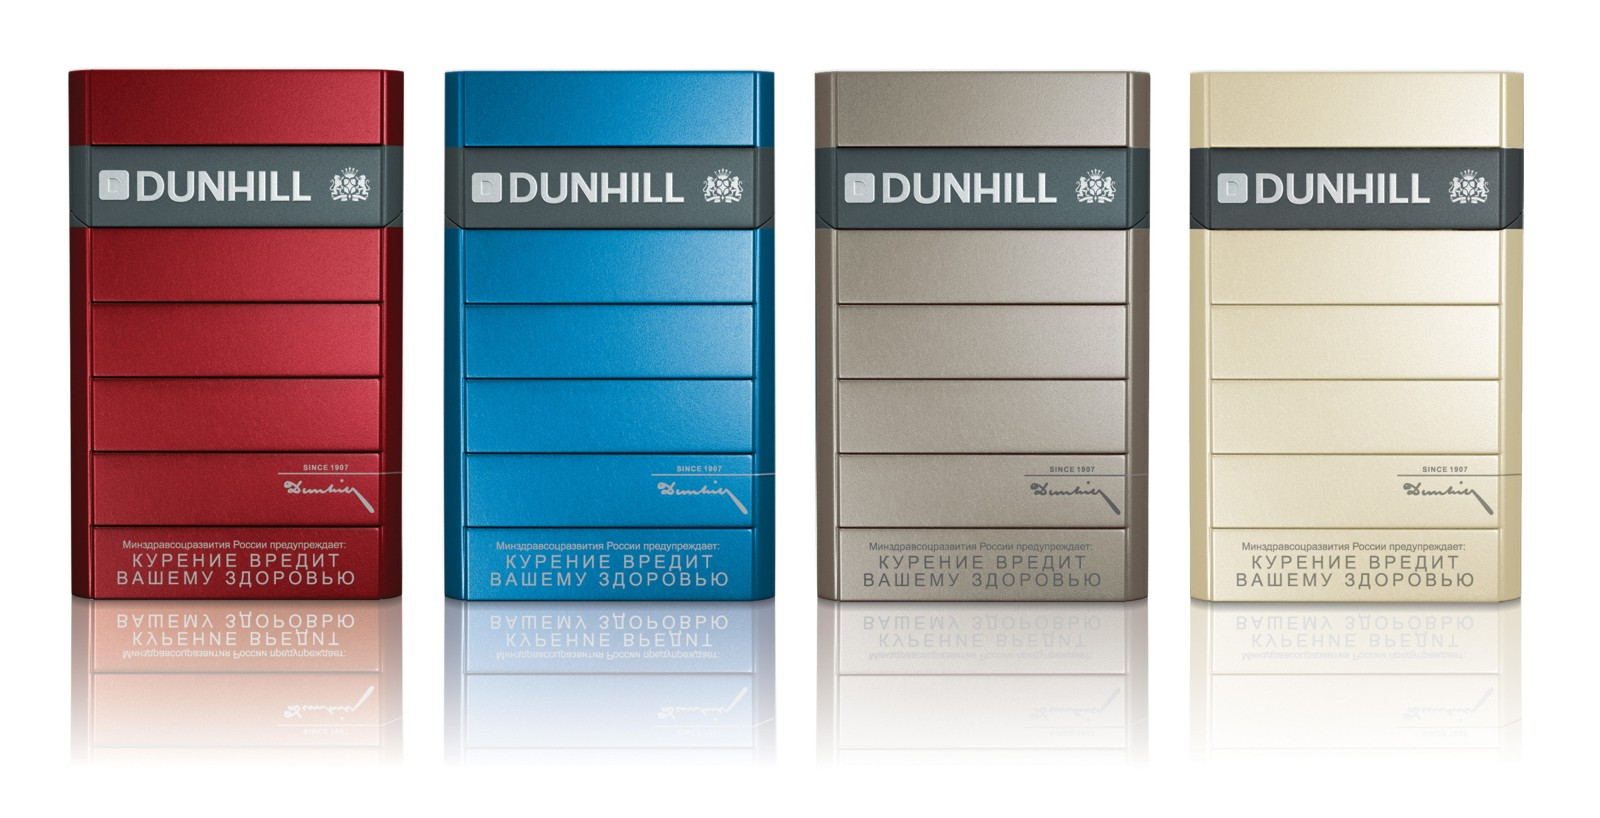 dunhill_new_designpack